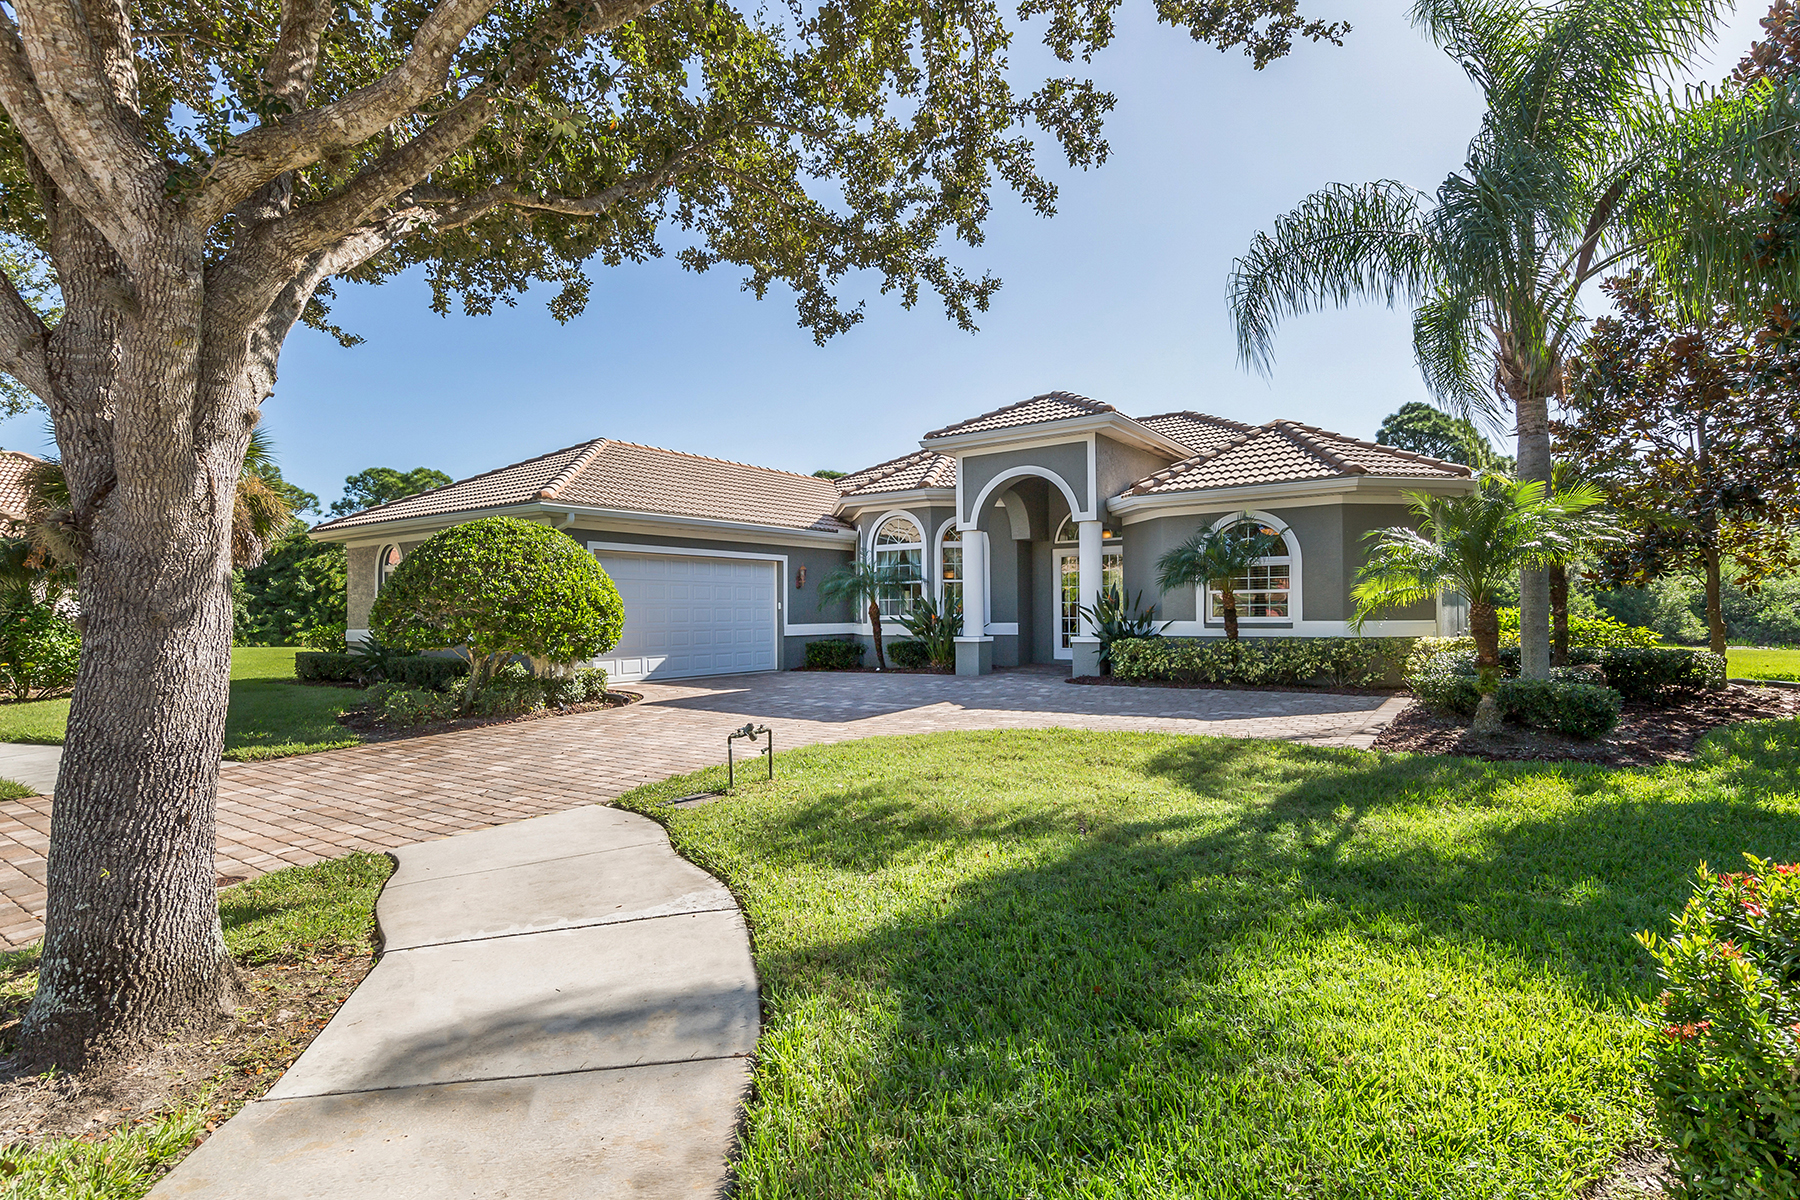 Single Family Homes for Sale at VENETIA 4605 Borghese Ct Venice, Florida 34293 United States